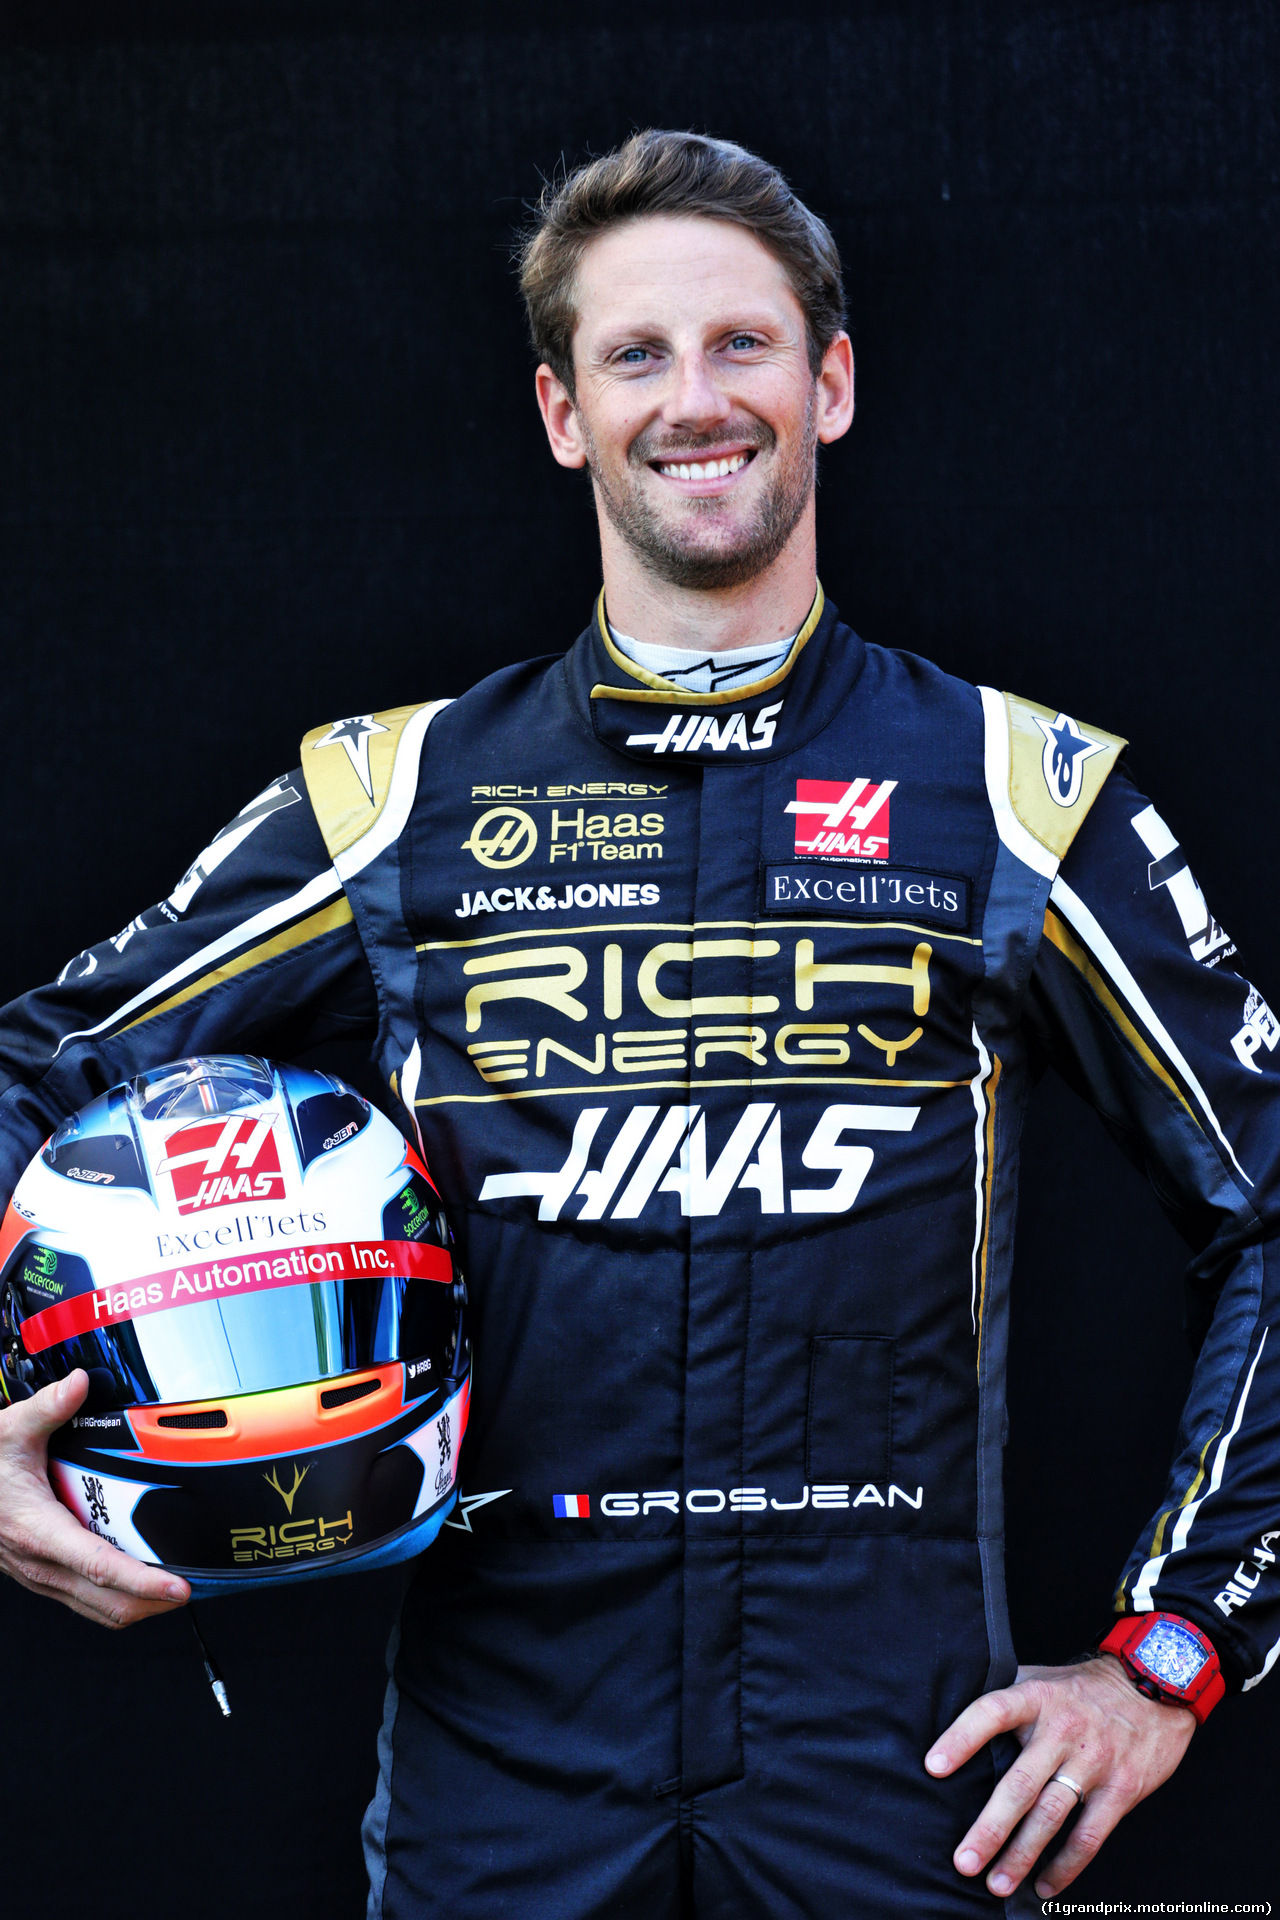 GP AUSTRALIA, Romain Grosjean (FRA) Haas F1 Team. 14.03.2019.